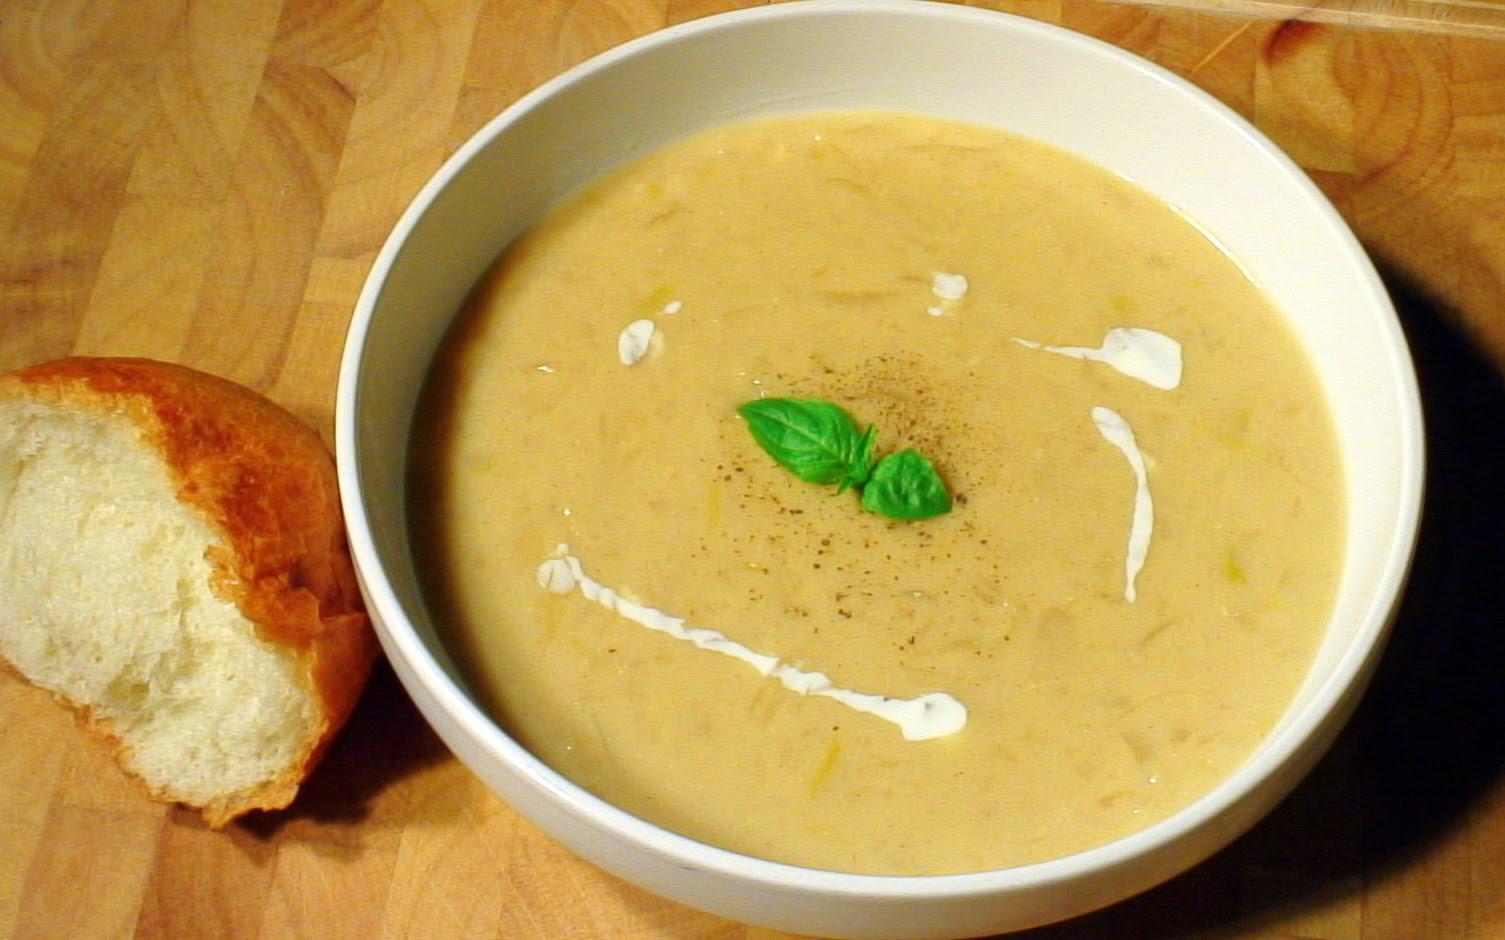 Edible Menu: Cream of Onion Soup